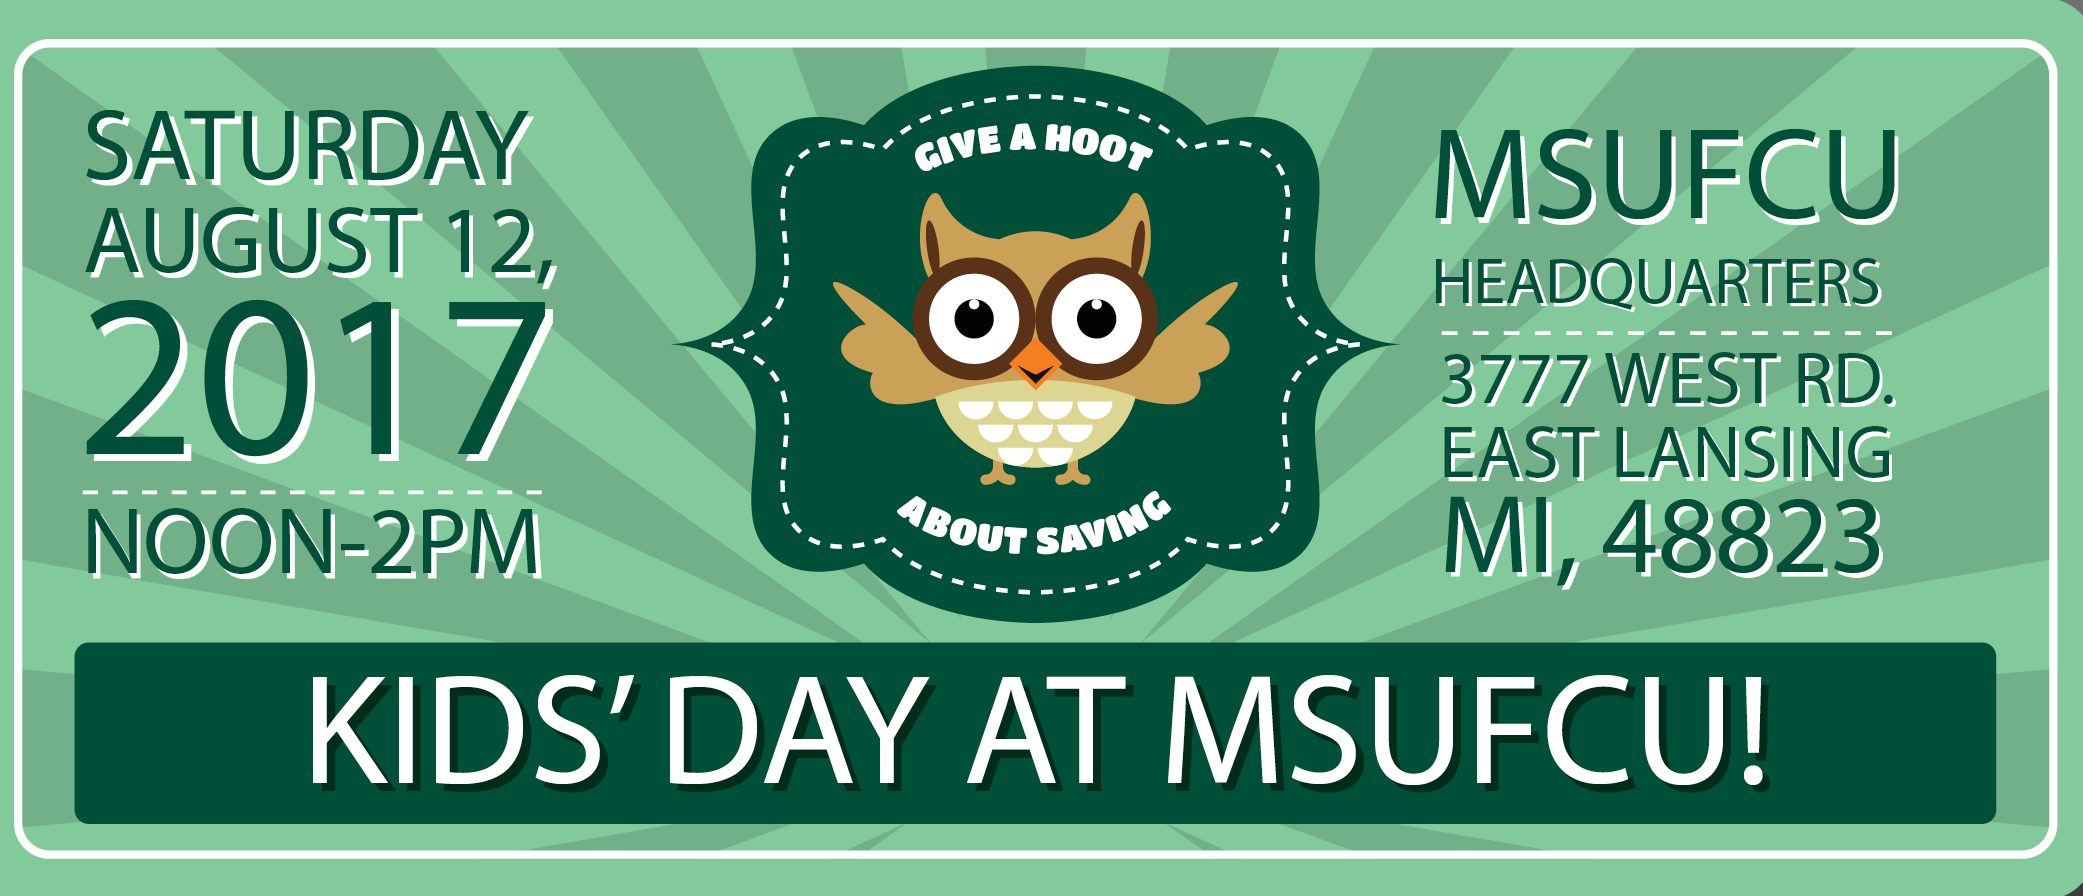 Join us for Kids' Day at the MSUFCU Headquarters on August 6, from noon to 2 p.m.